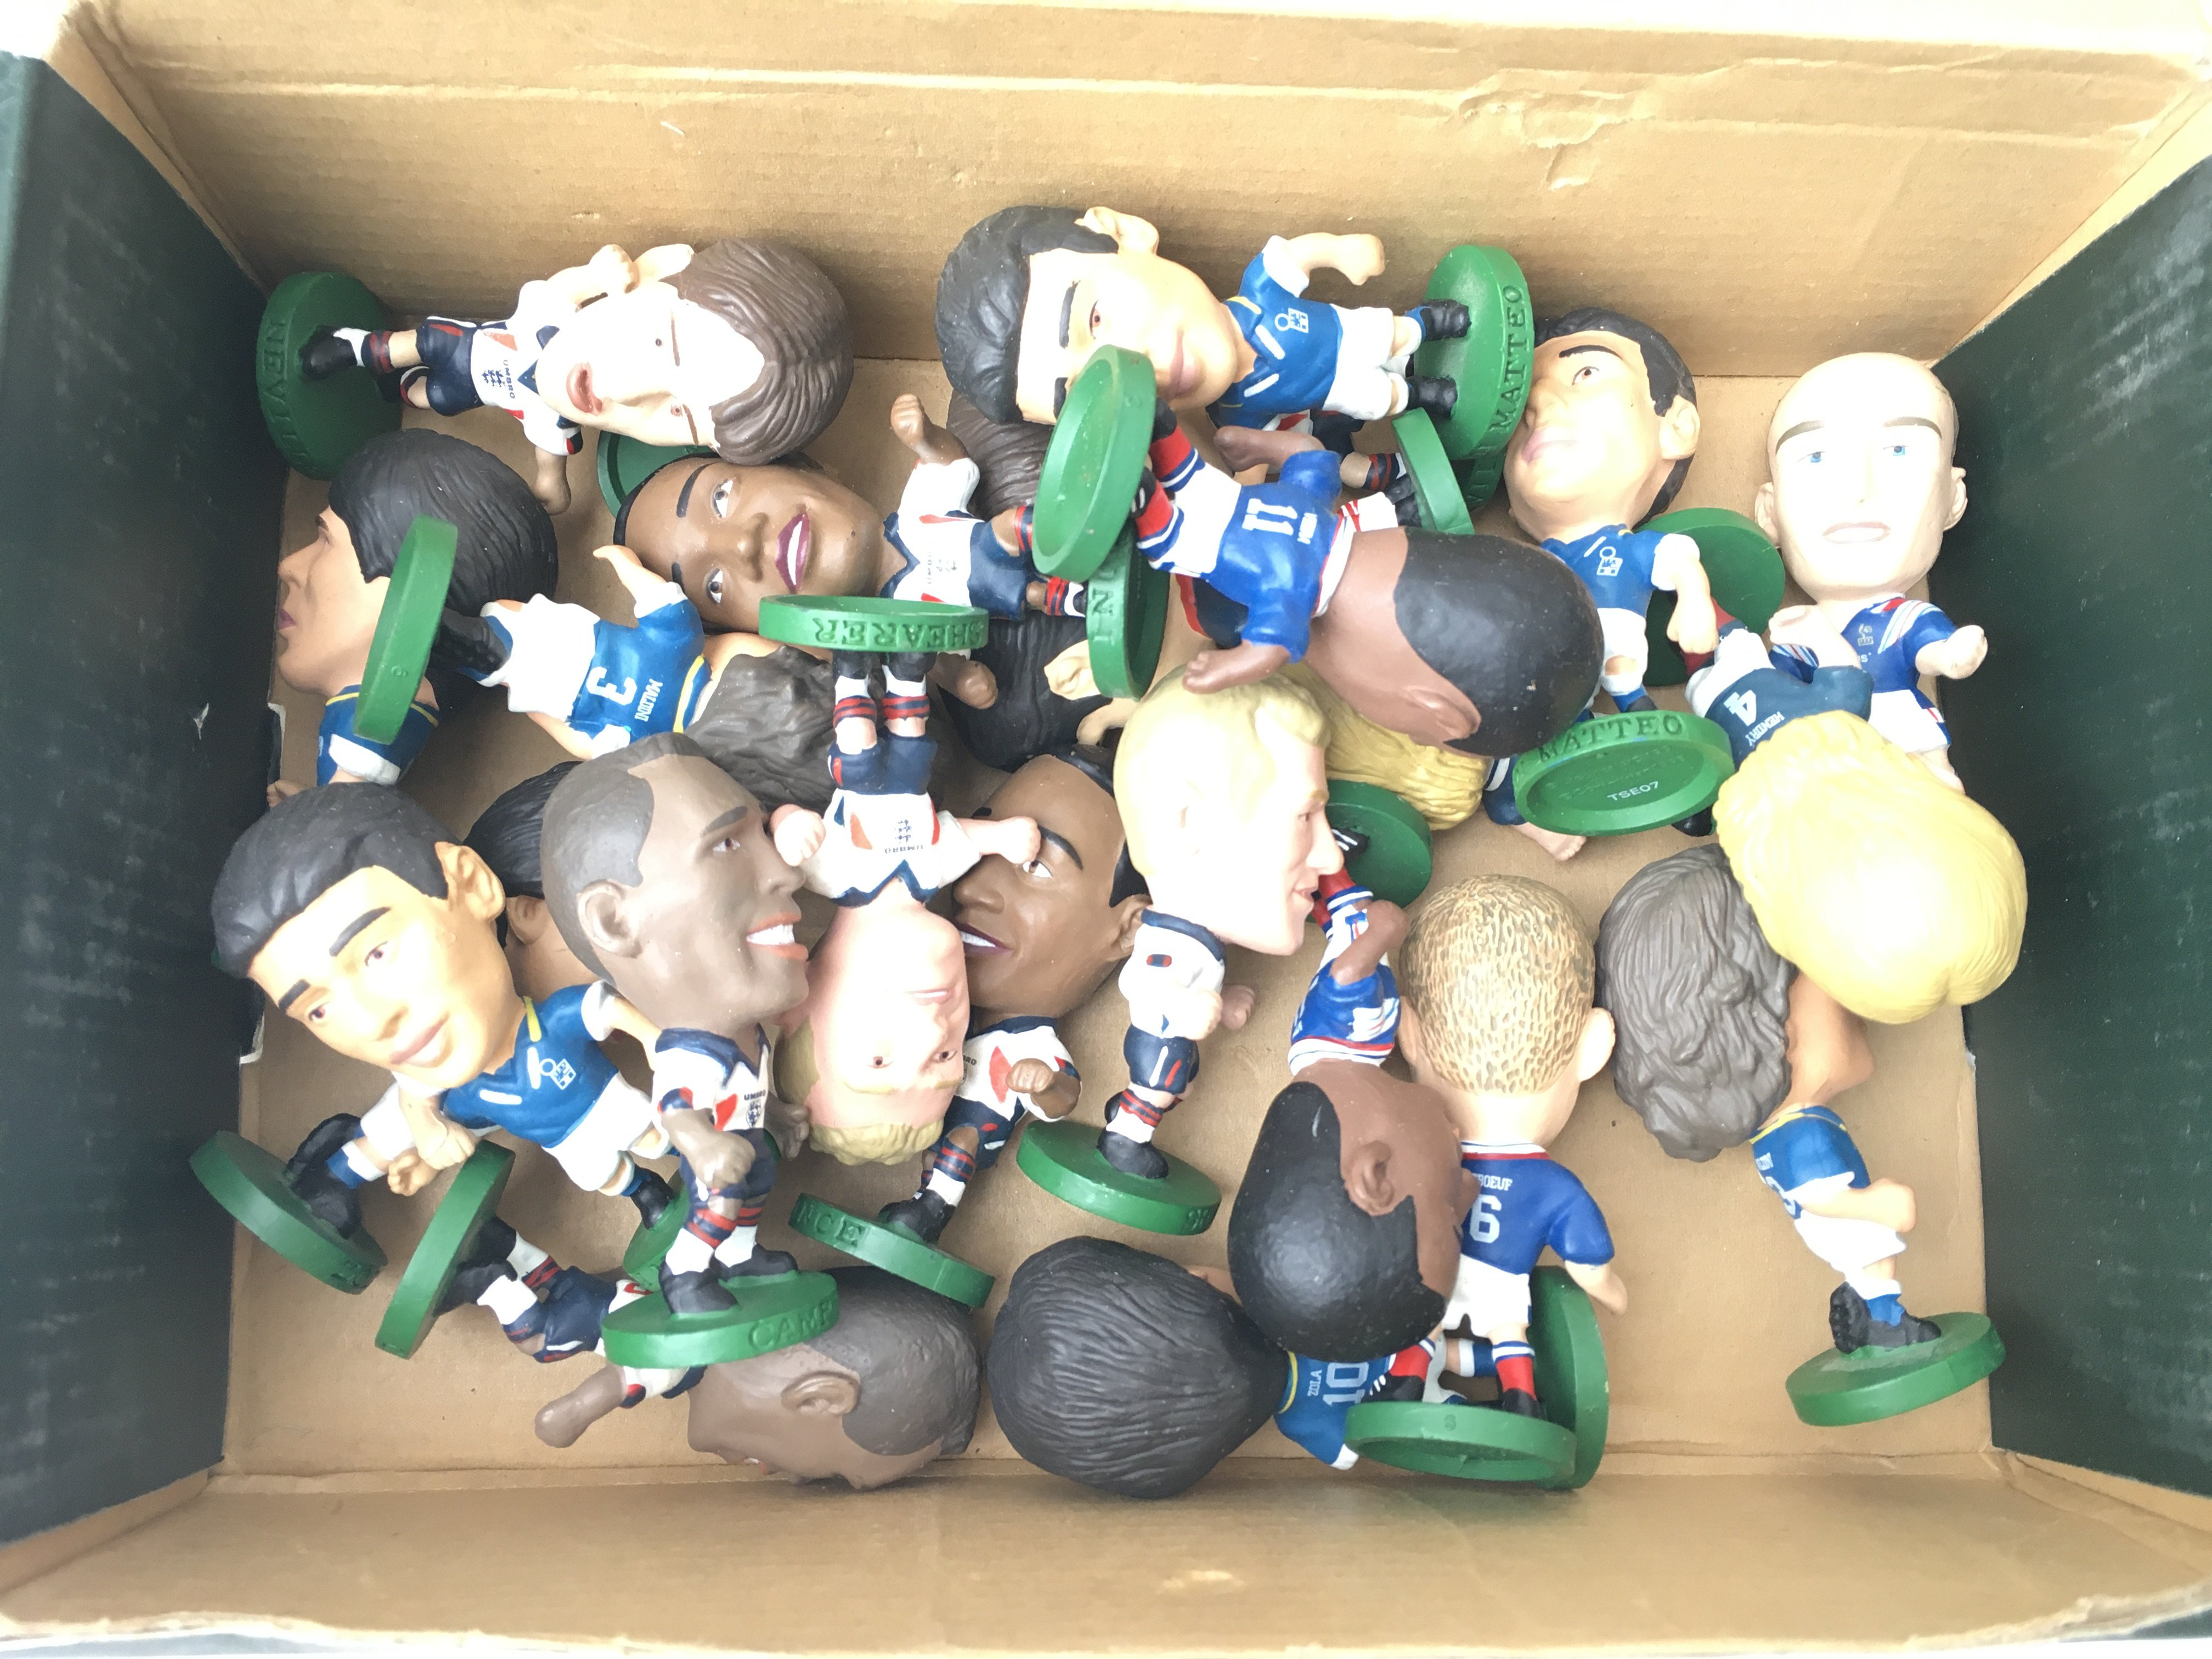 A Boxed Corinthian F.A Football collection Display Stand with Figures. - Image 3 of 3